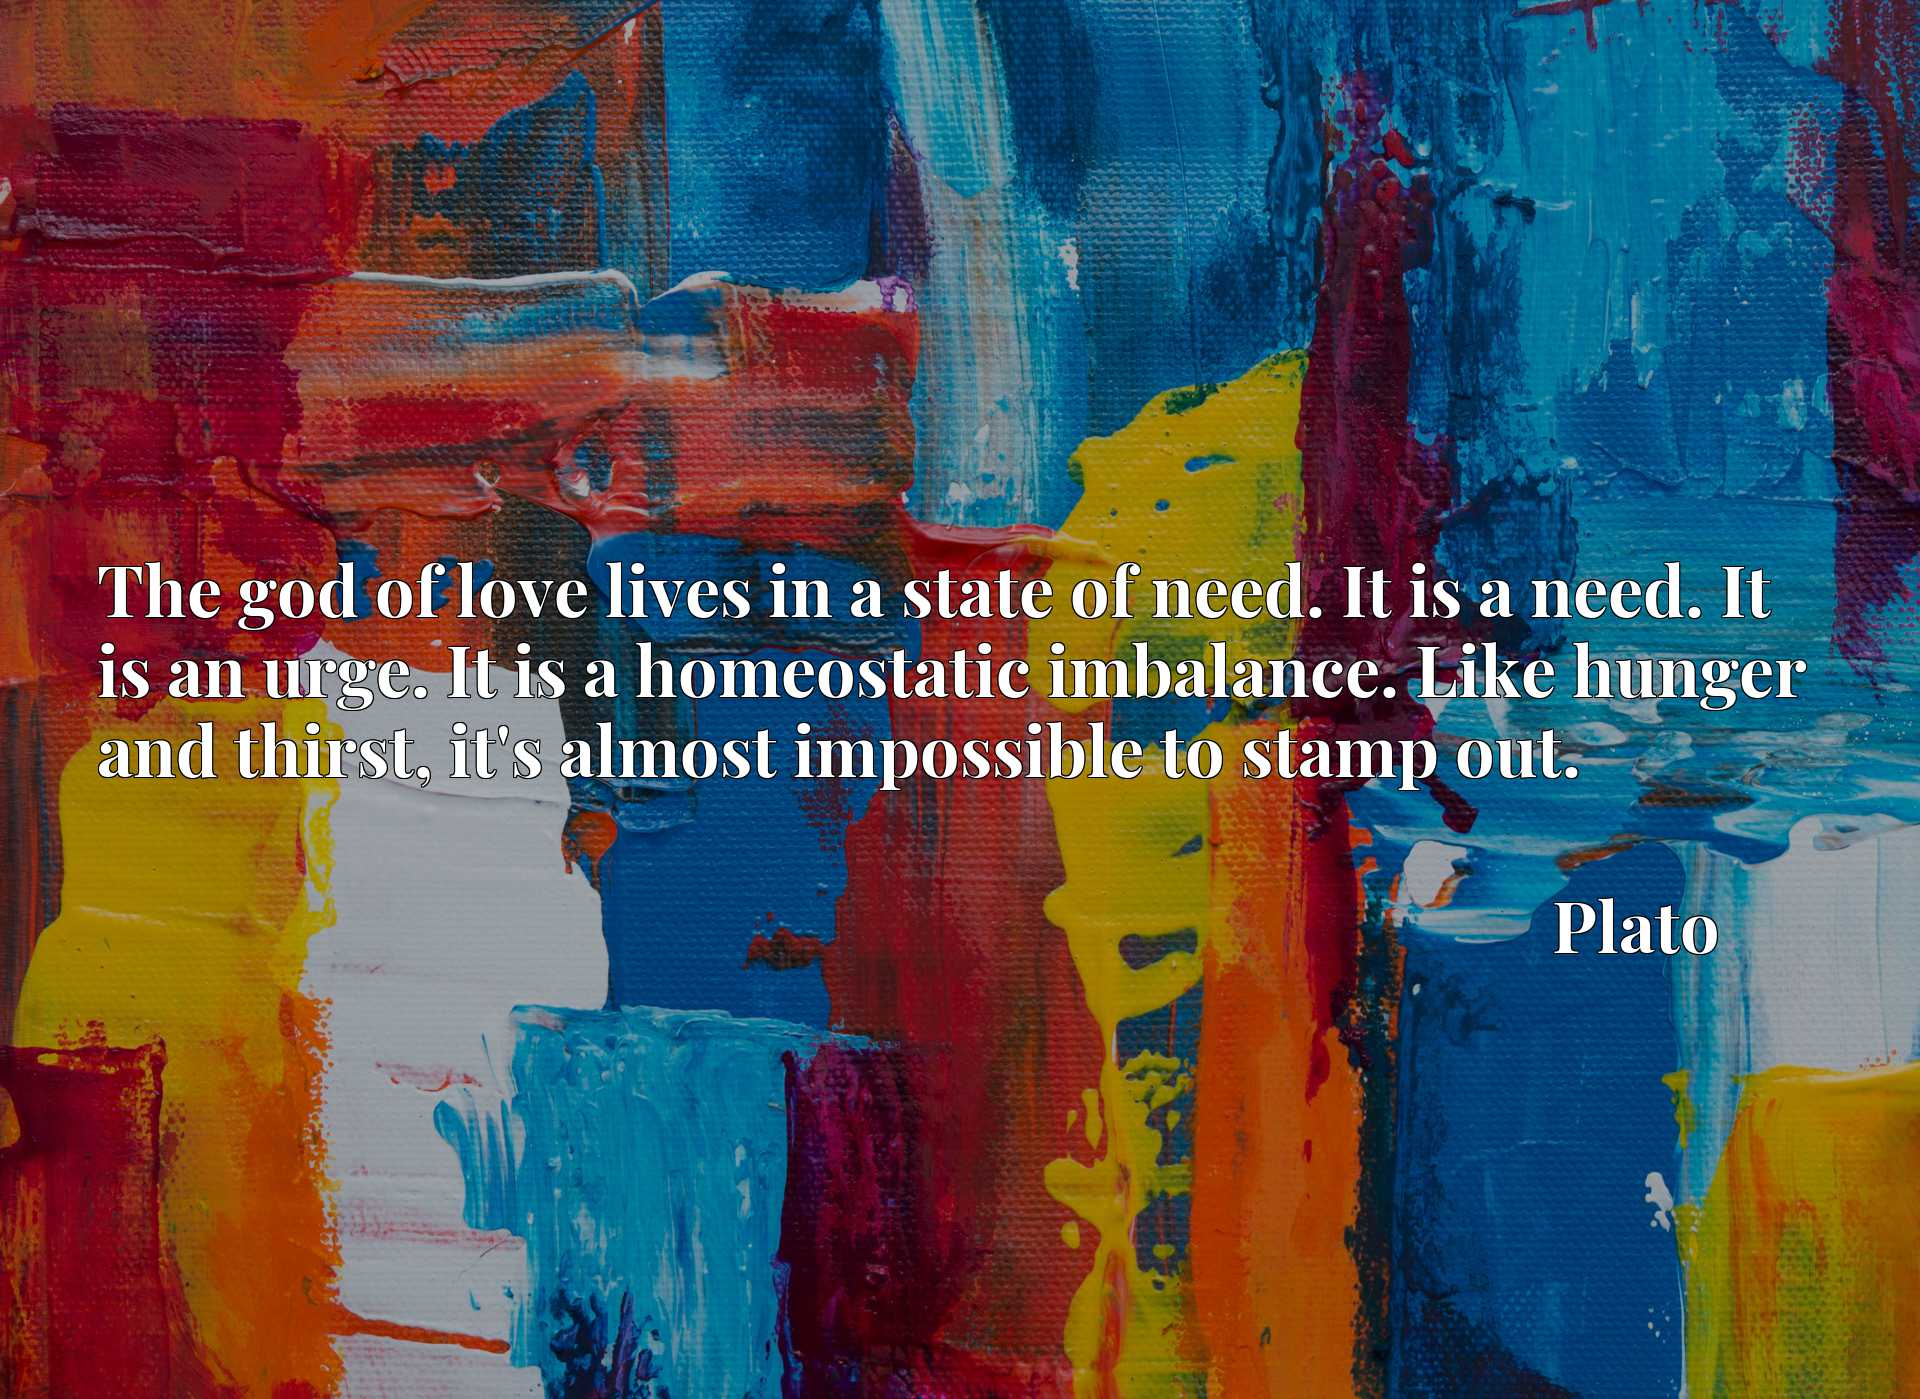 Quote Picture :The god of love lives in a state of need. It is a need. It is an urge. It is a homeostatic imbalance. Like hunger and thirst, it's almost impossible to stamp out.